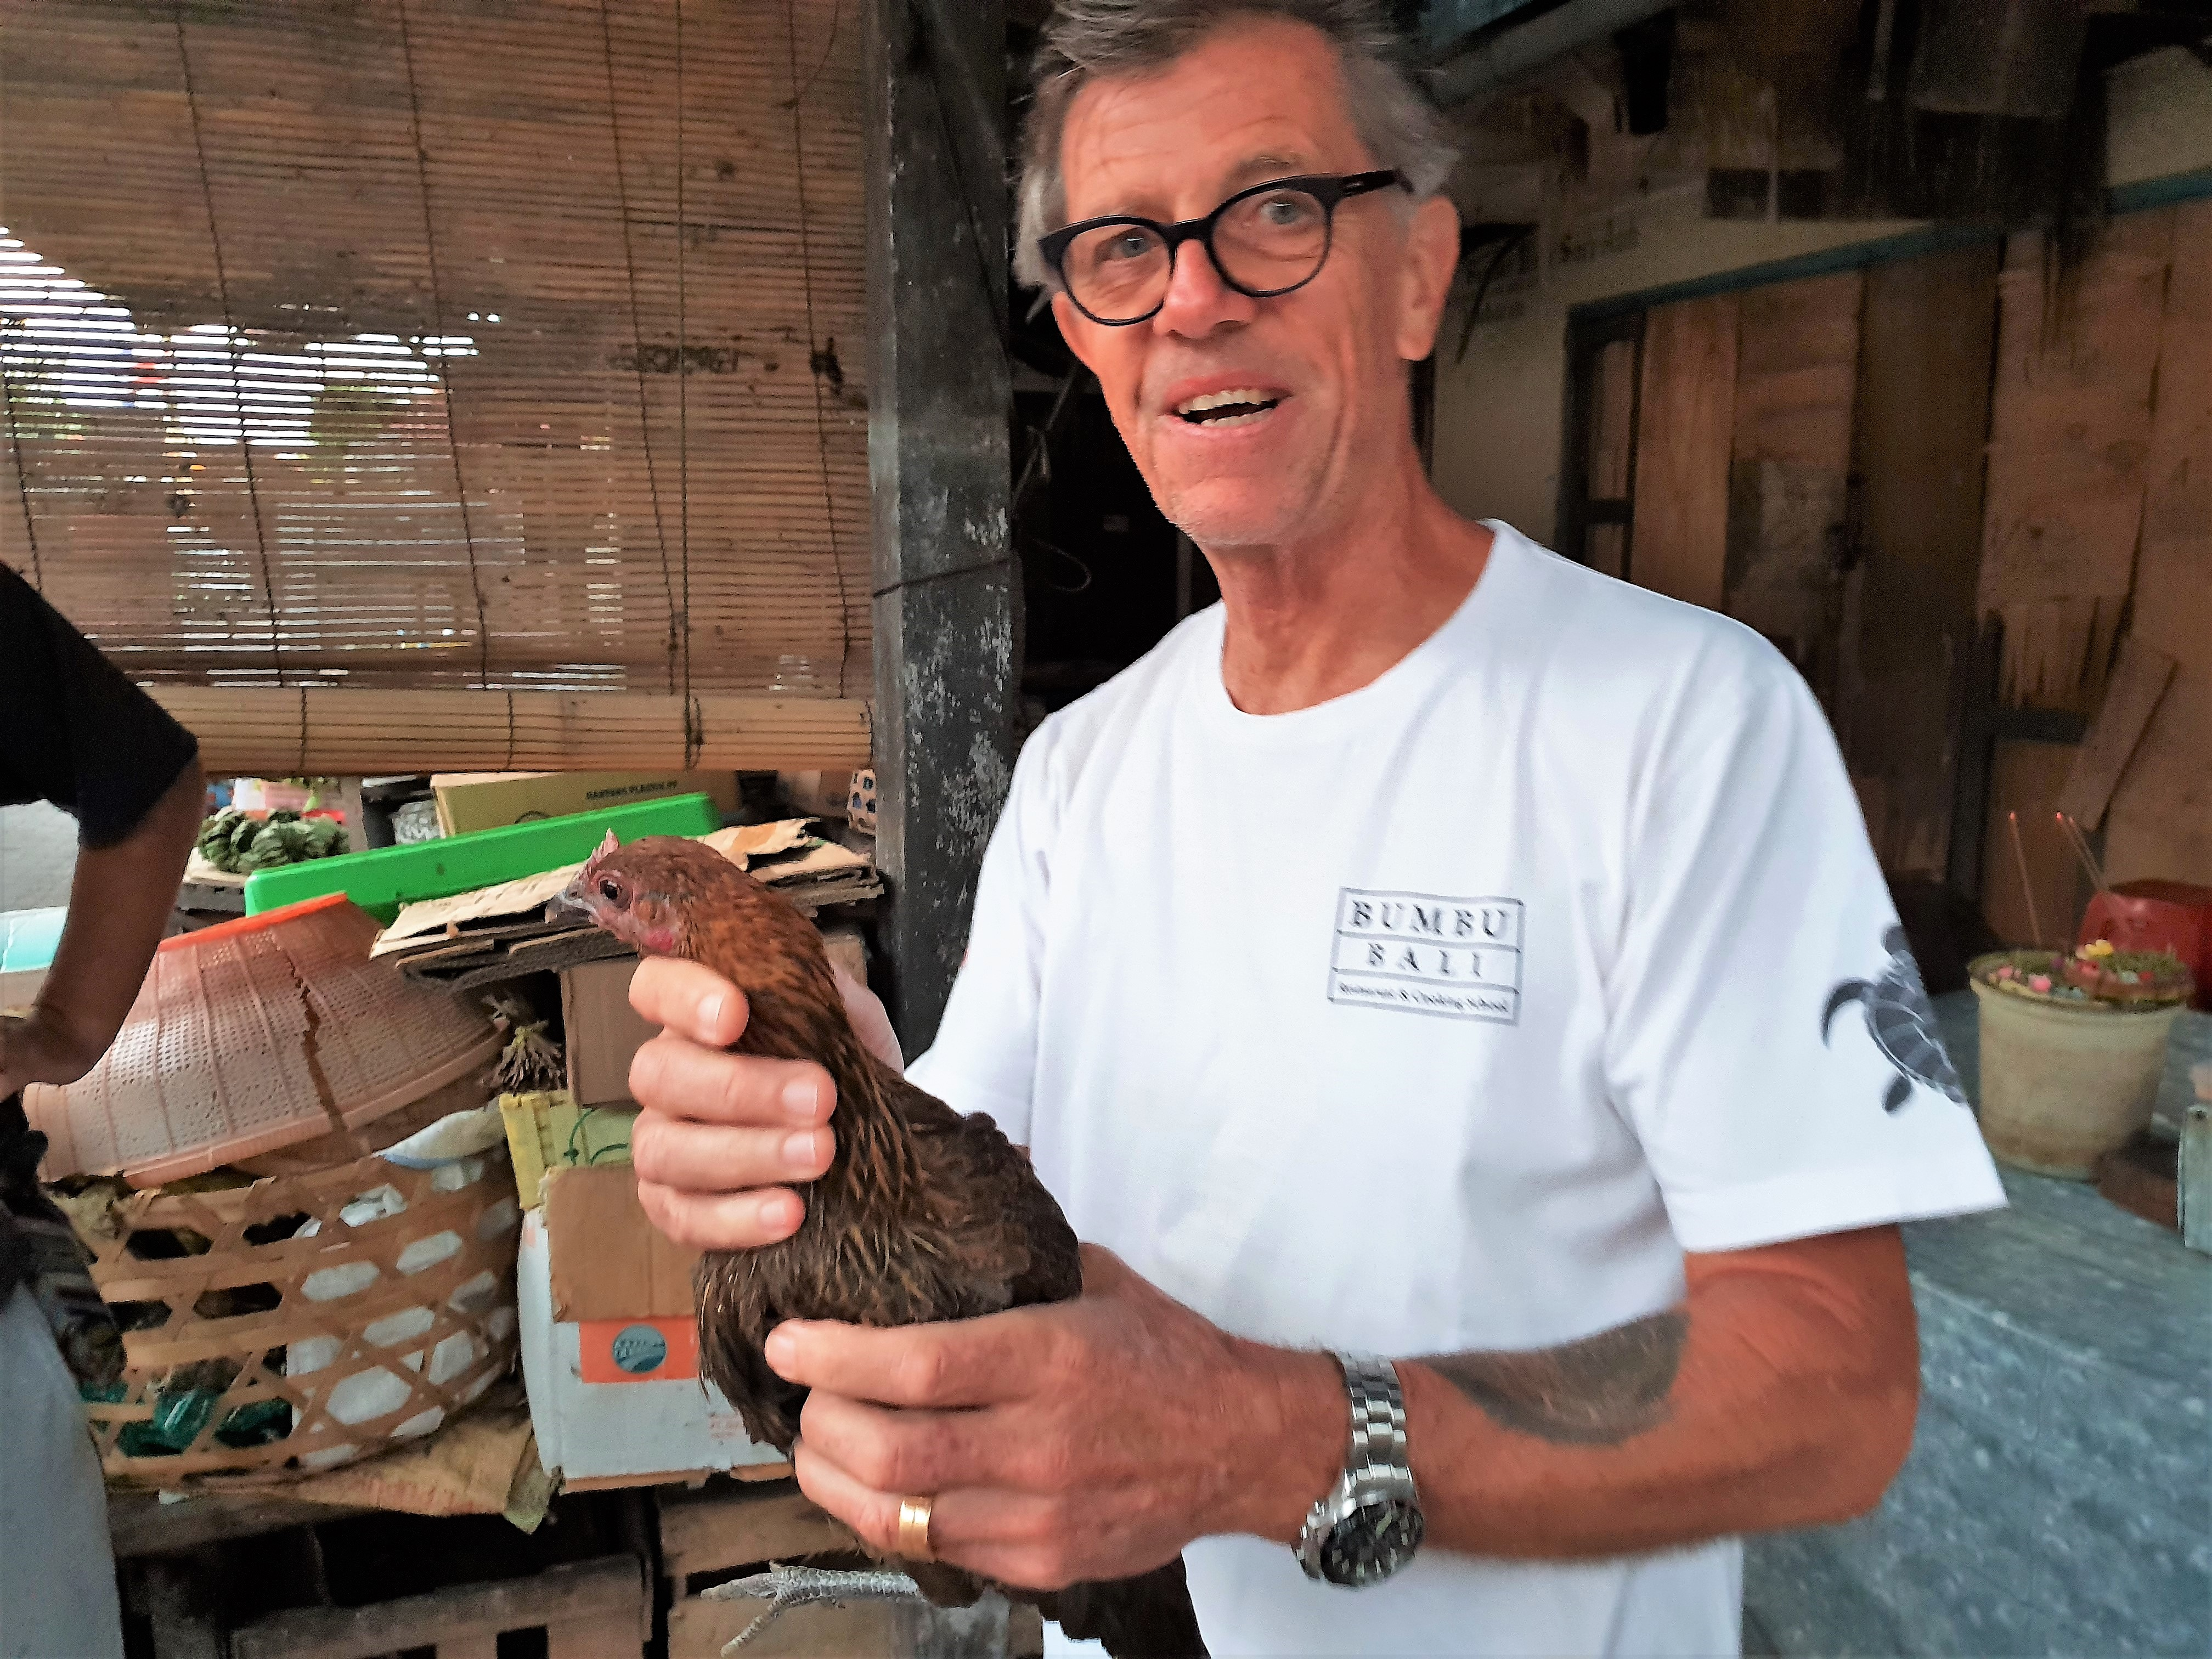 Chef Heinz von Holzen, owner of Bumbu Bali restaurants and Rumah Bali Villas, on Bali island, placescases.com